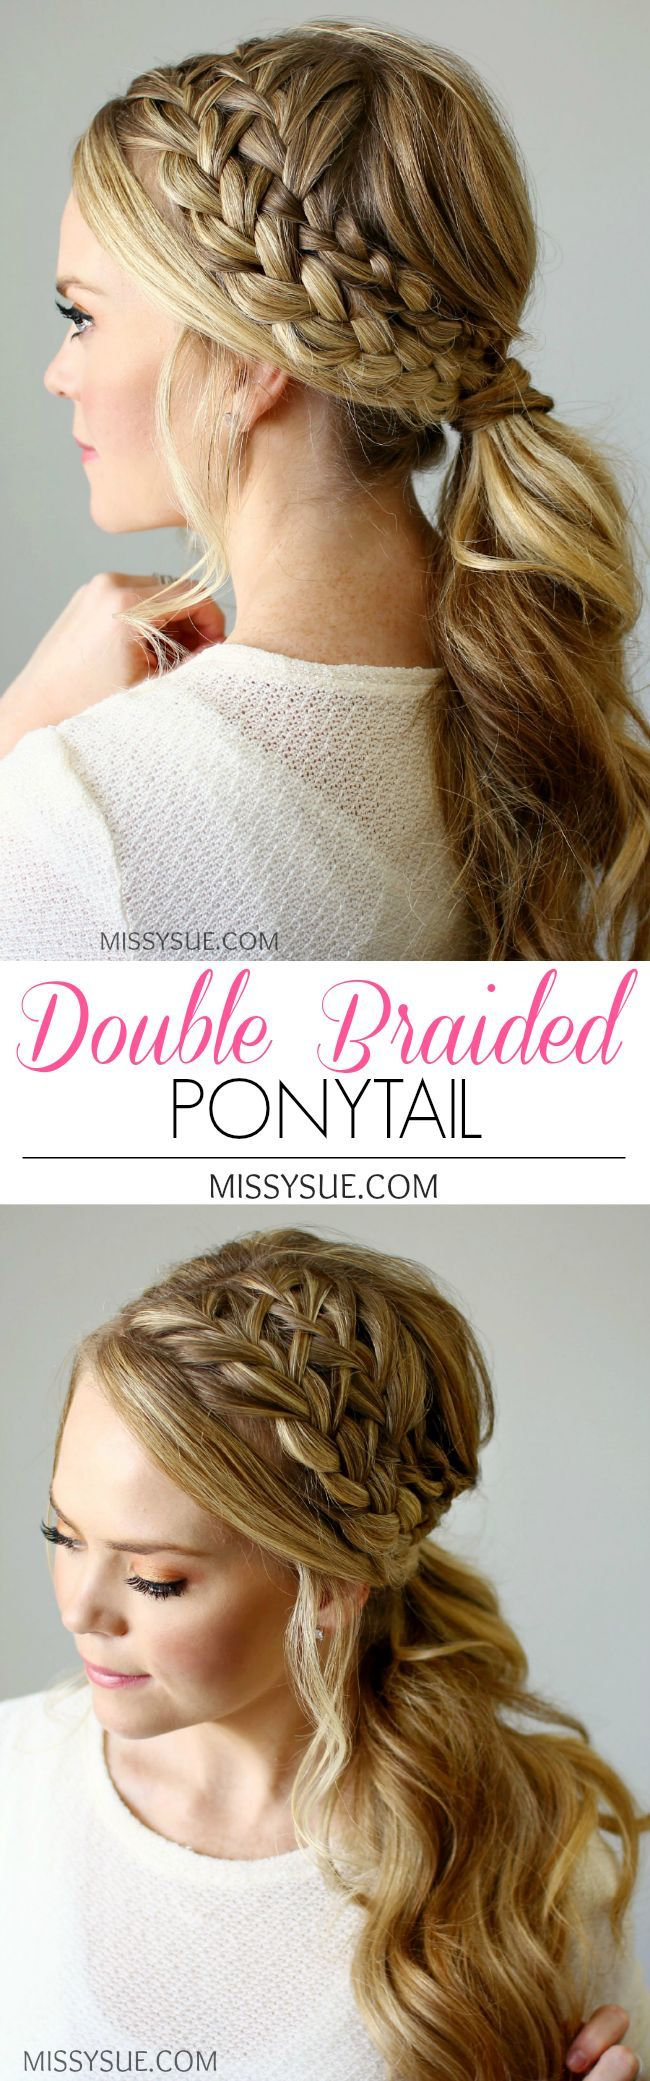 Pleasing 1000 Ideas About Braided Ponytail Hairstyles On Pinterest Hairstyles For Men Maxibearus